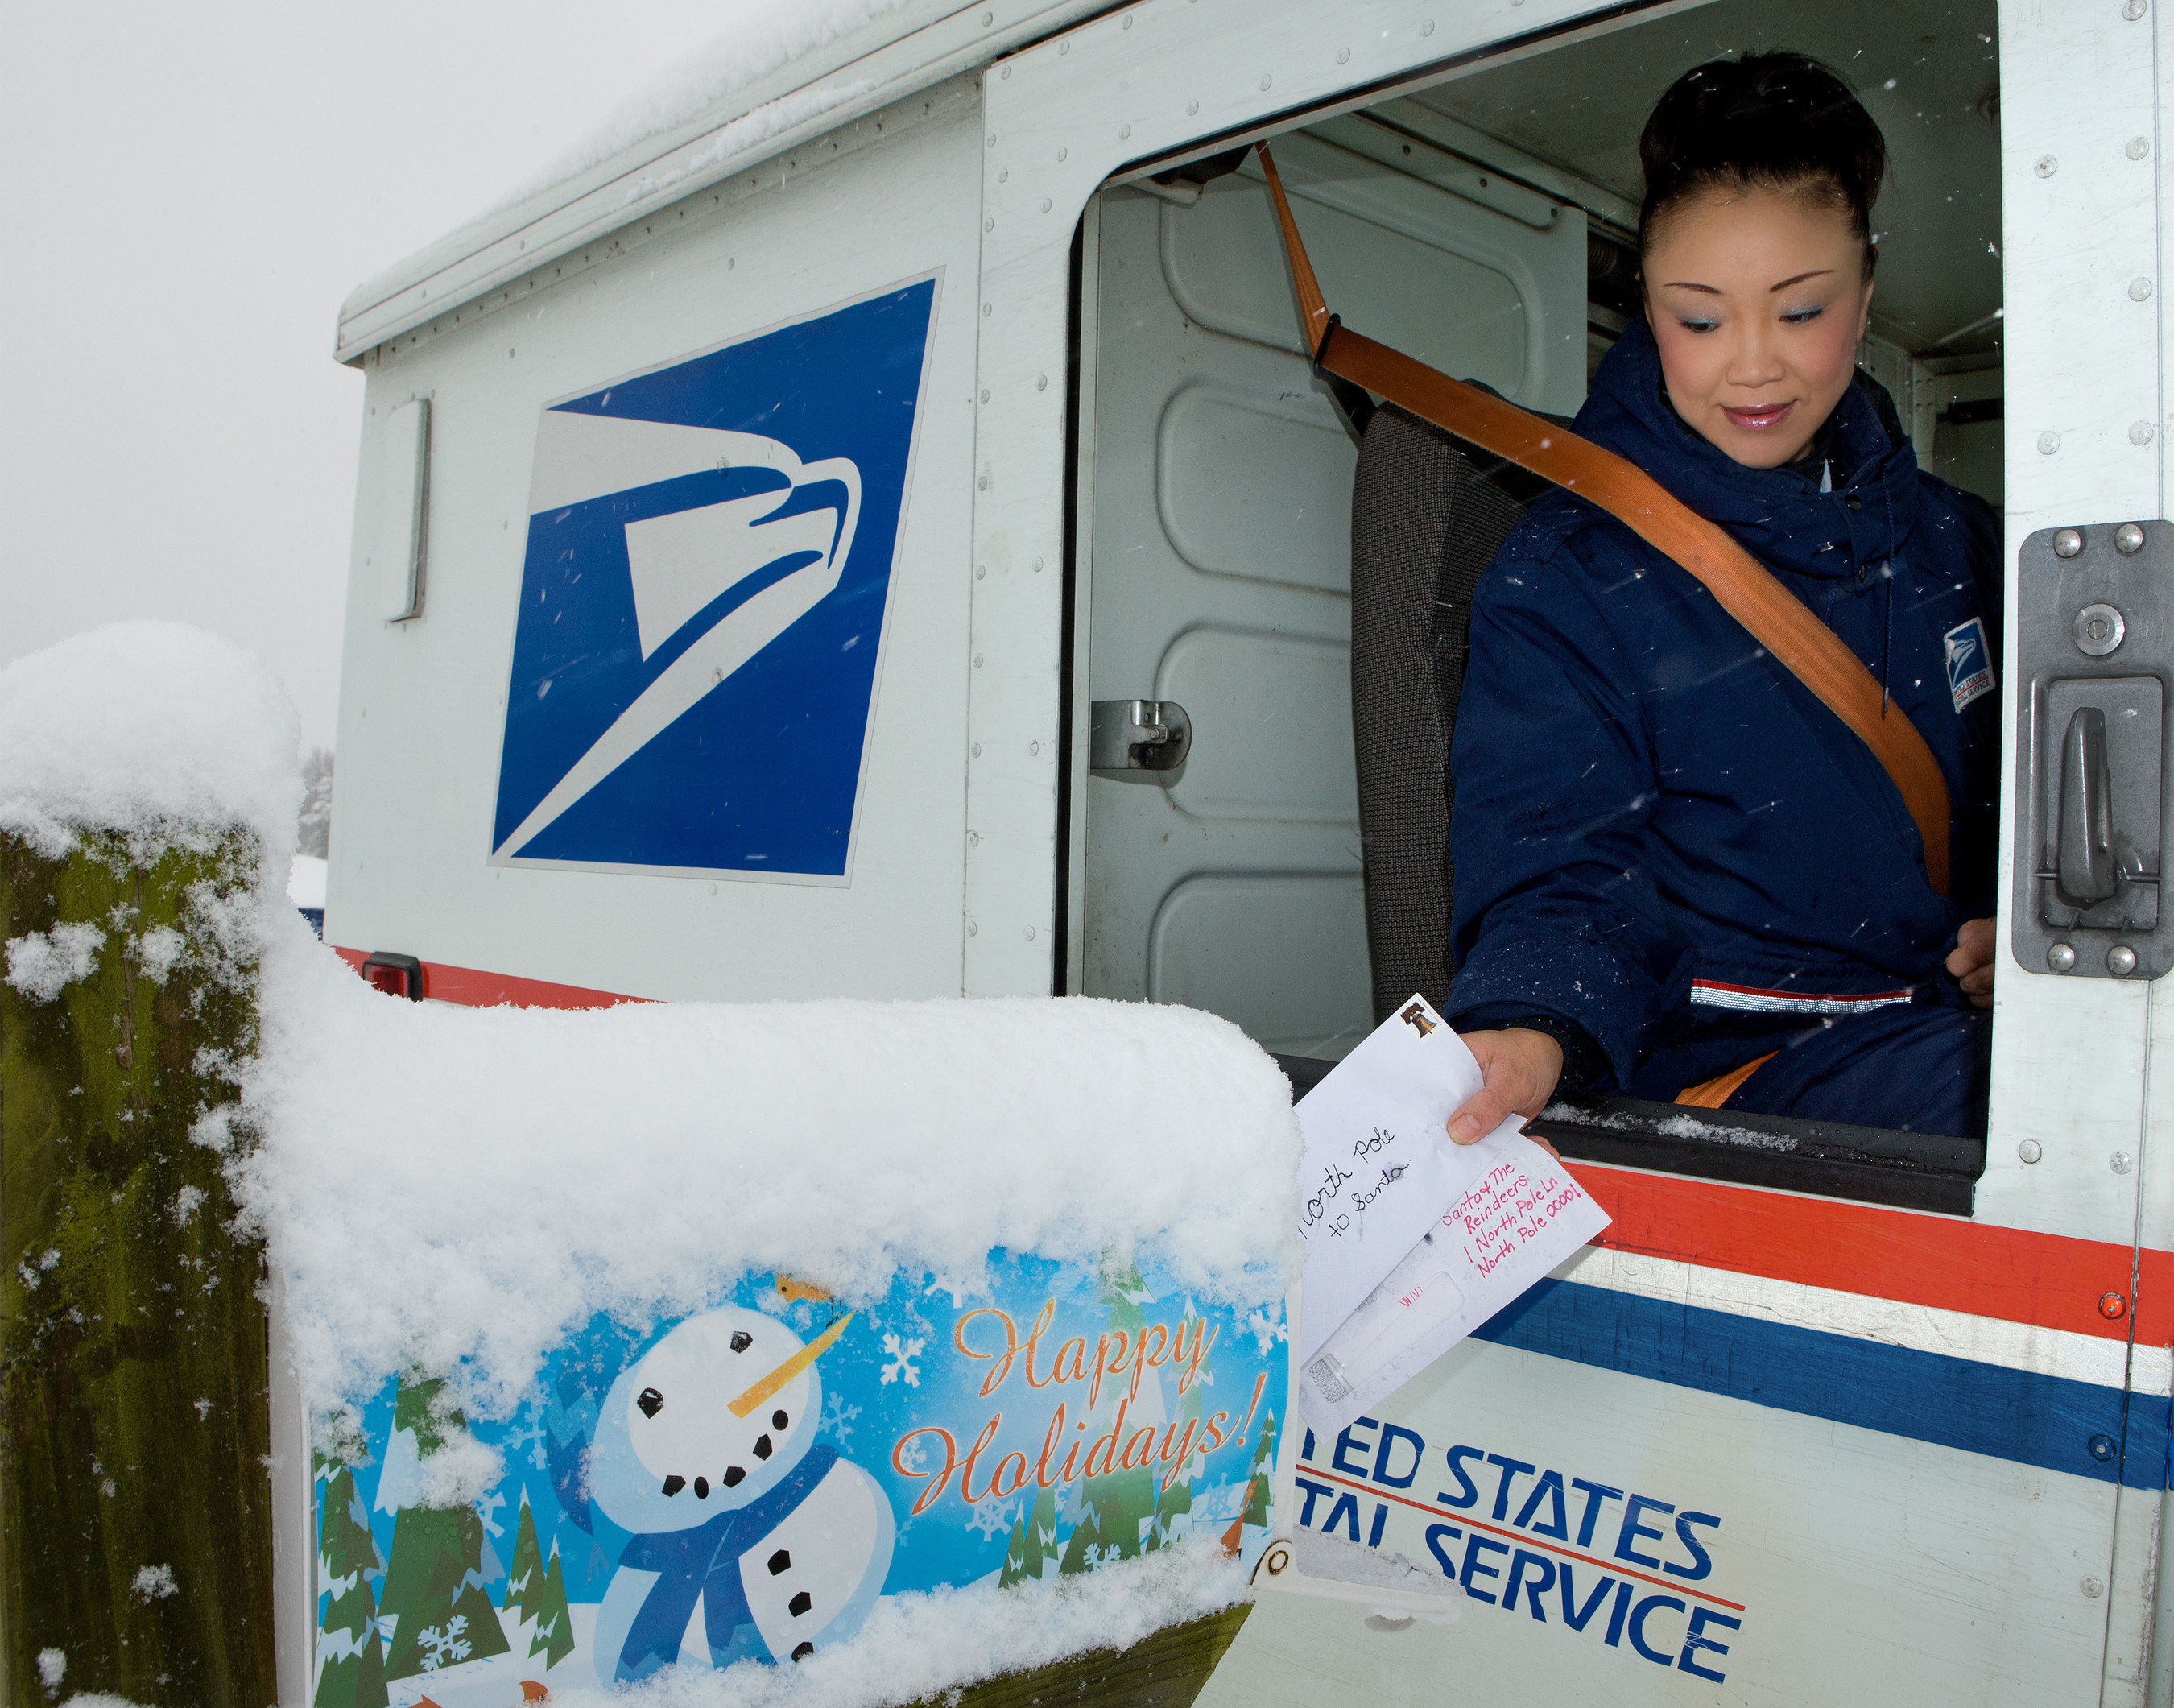 USPS carrier delivers mail, Photo courtesy: USPS